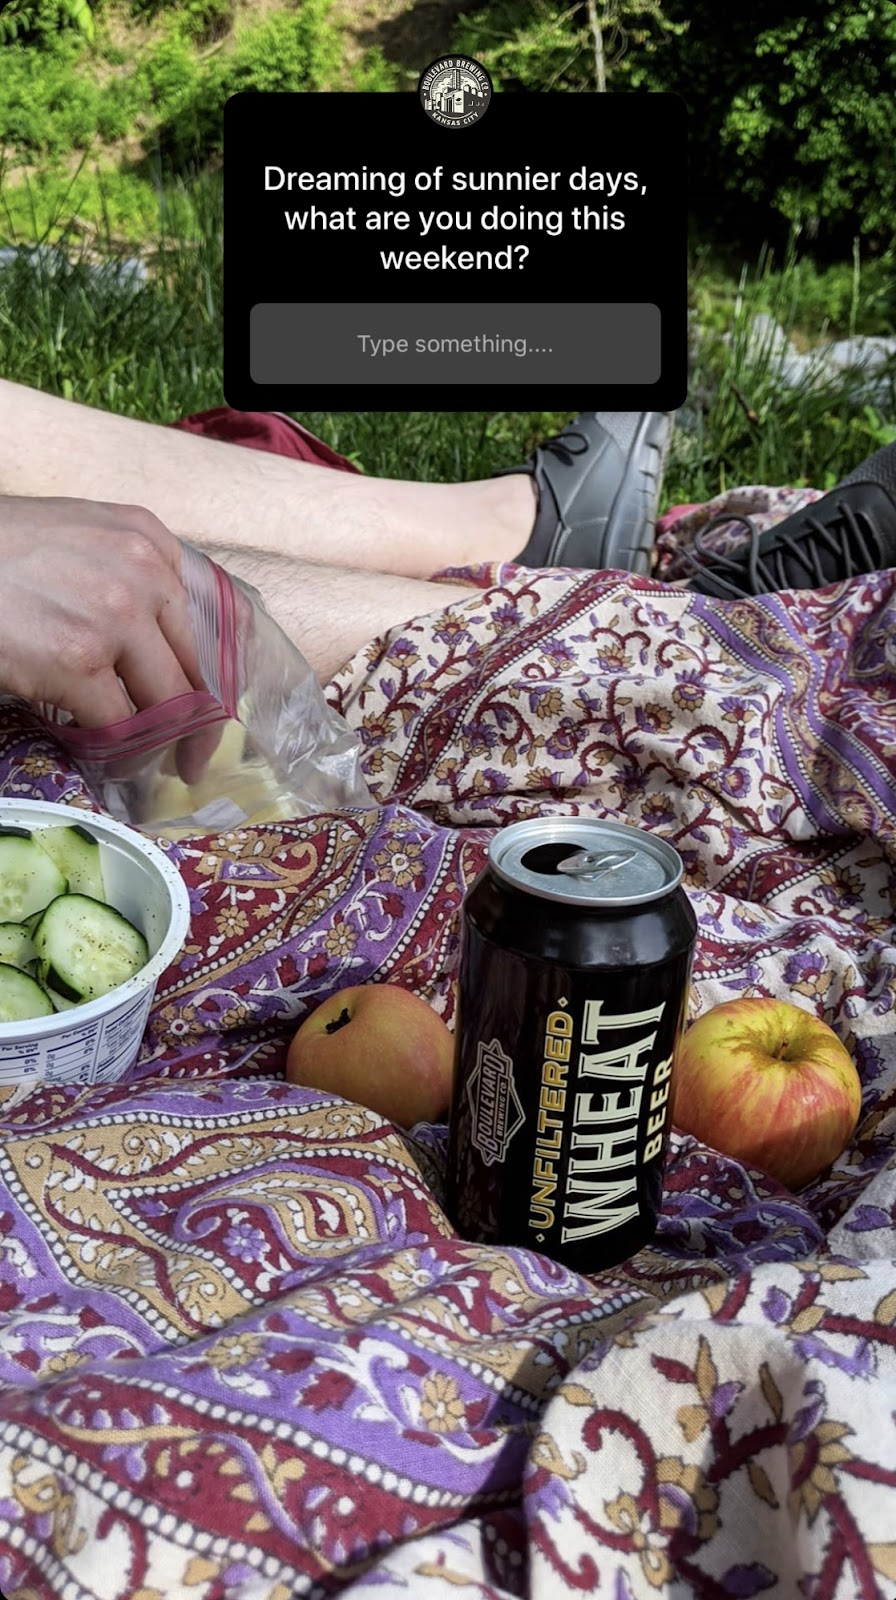 A Boulevard Beer Instagram story with a photo of a picnic outside and a question asking, 'What are you doing this weekend?'